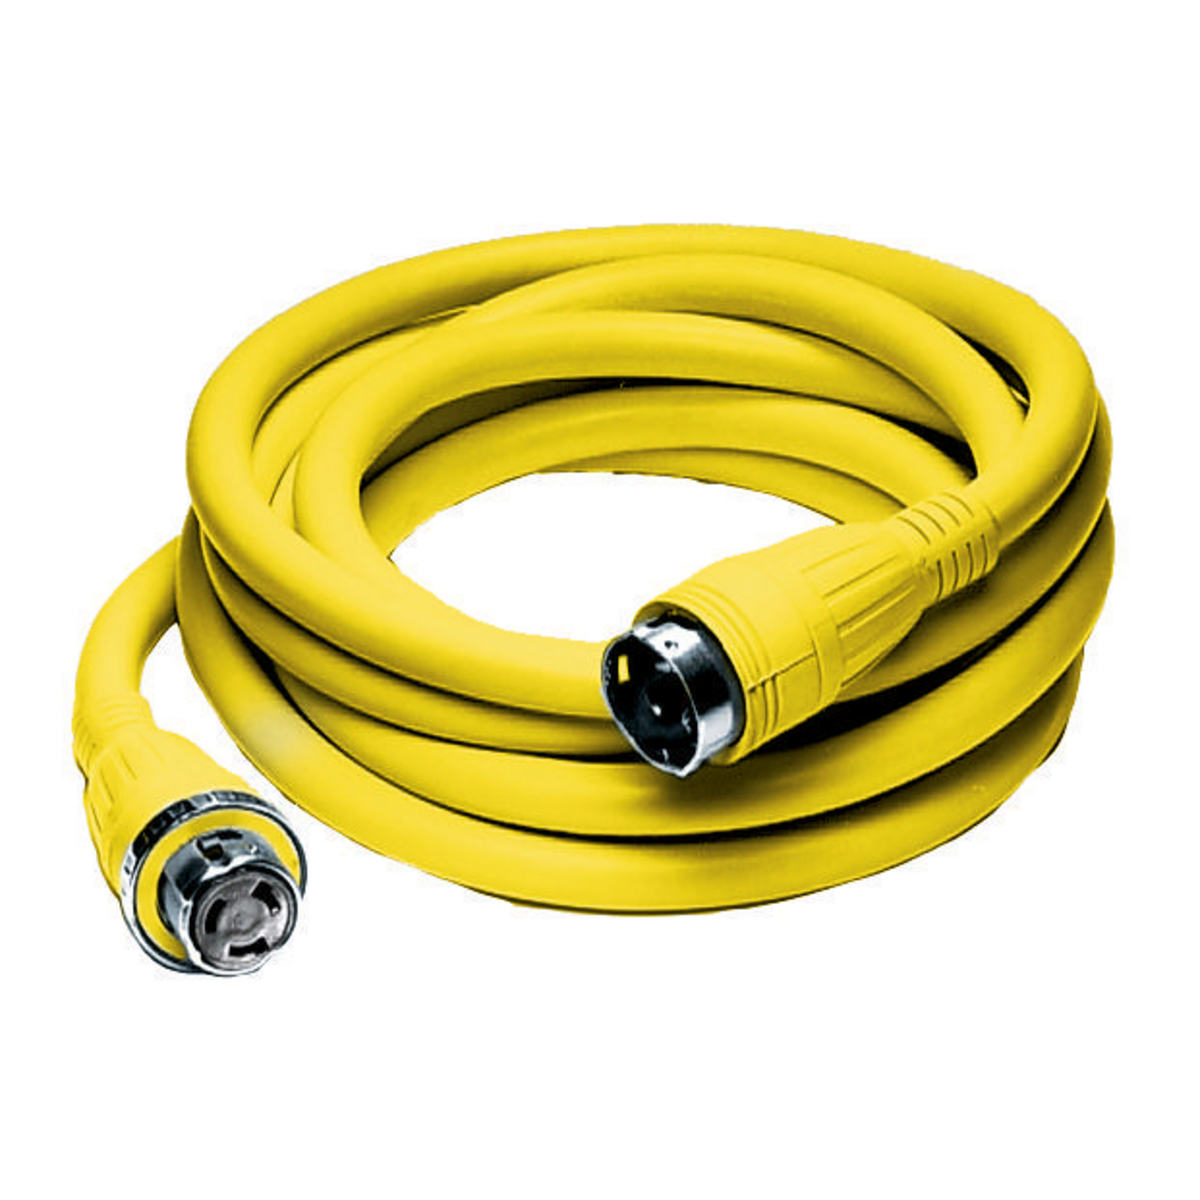 Hubbell HBL61CM42 Marine CABLE, 25', 50A 125/250V, YL